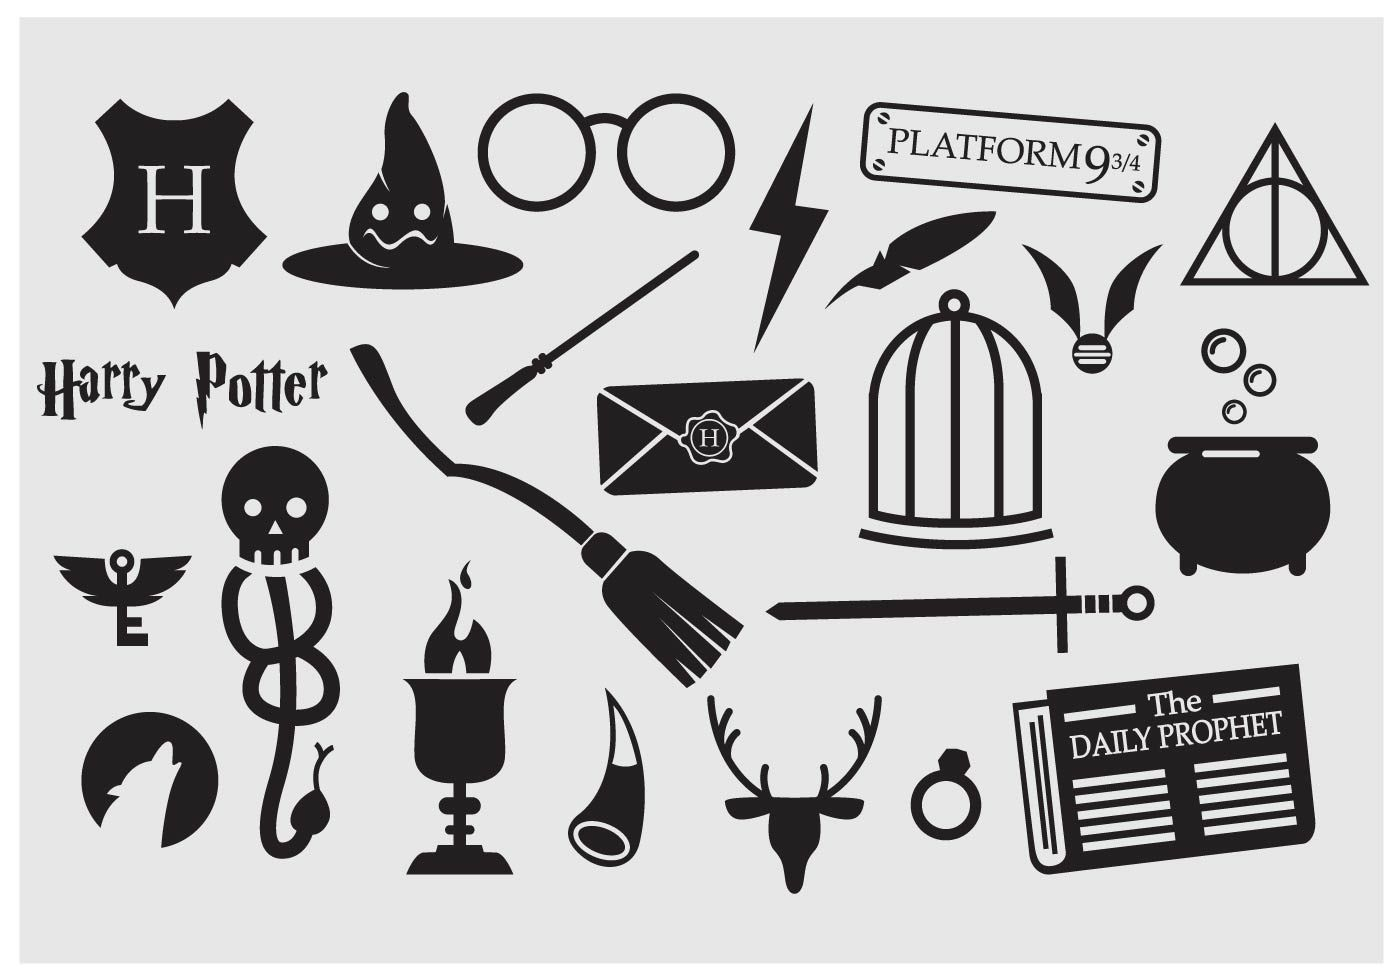 Harry Potter Icon Vector Now Available On 23 Magical Illustration